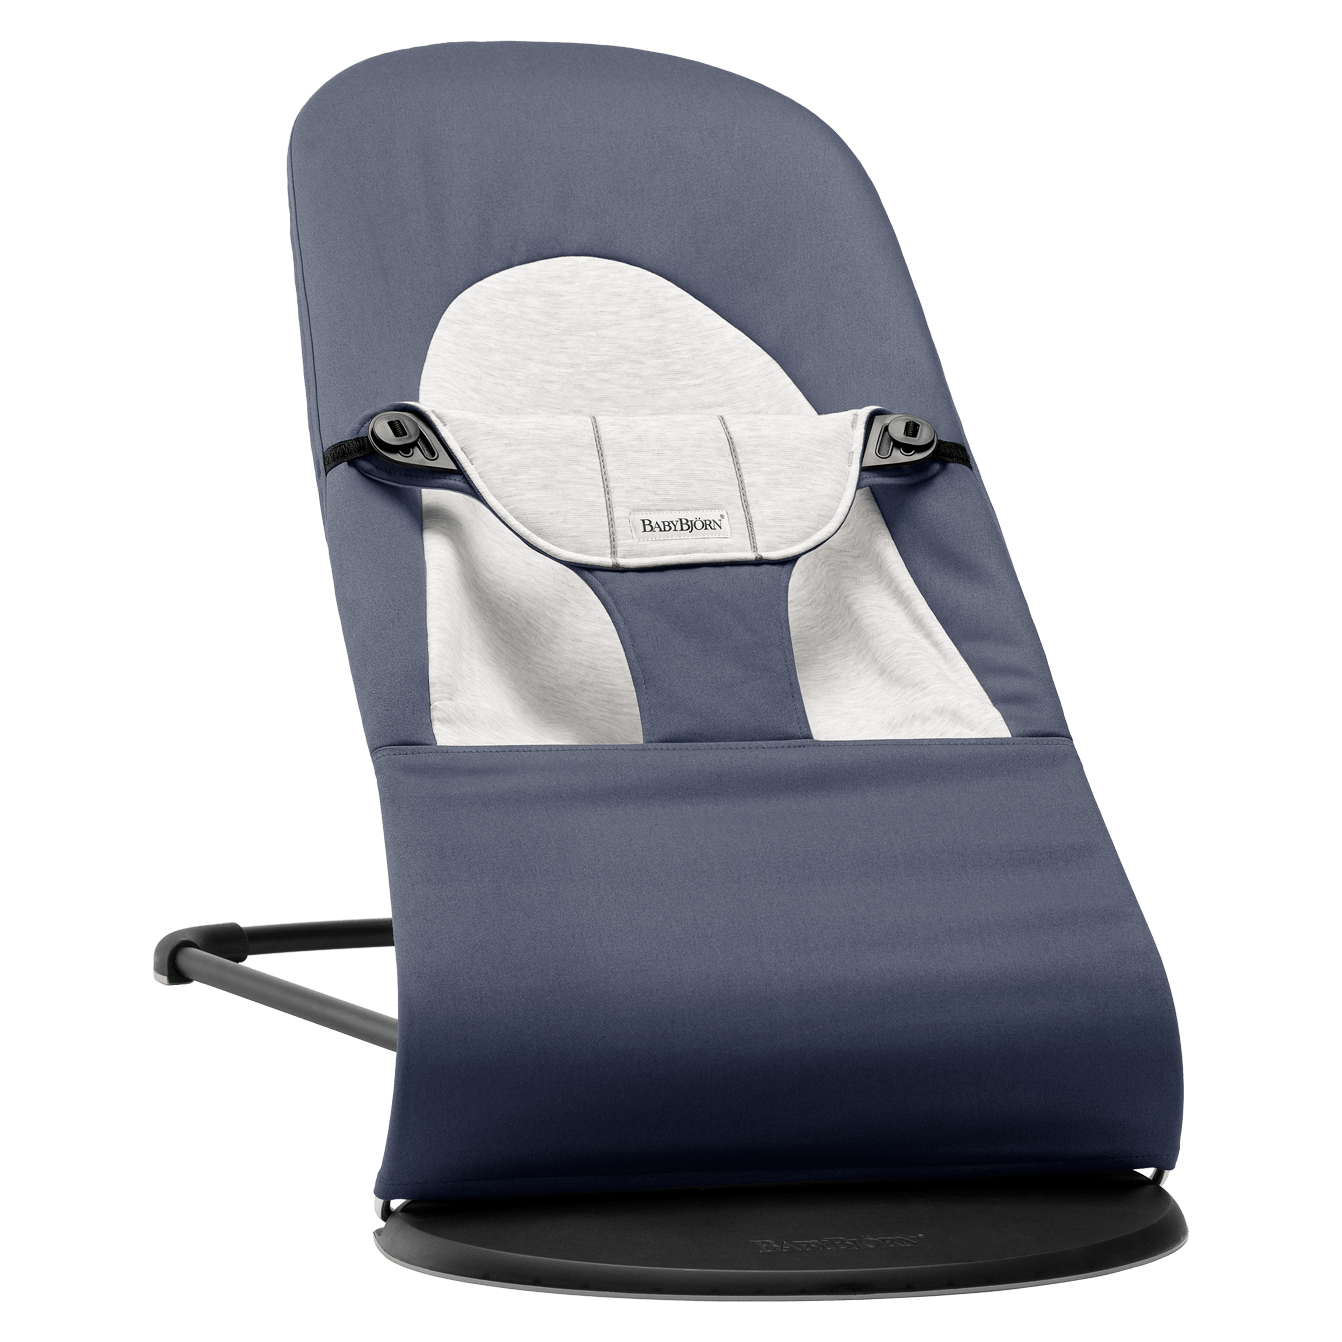 BABYBJÖRN Bouncer Balance Soft in fog blue and grey cotton jersey, an ergonomic and extra soft and cozy baby bouncer with gentle rocking.